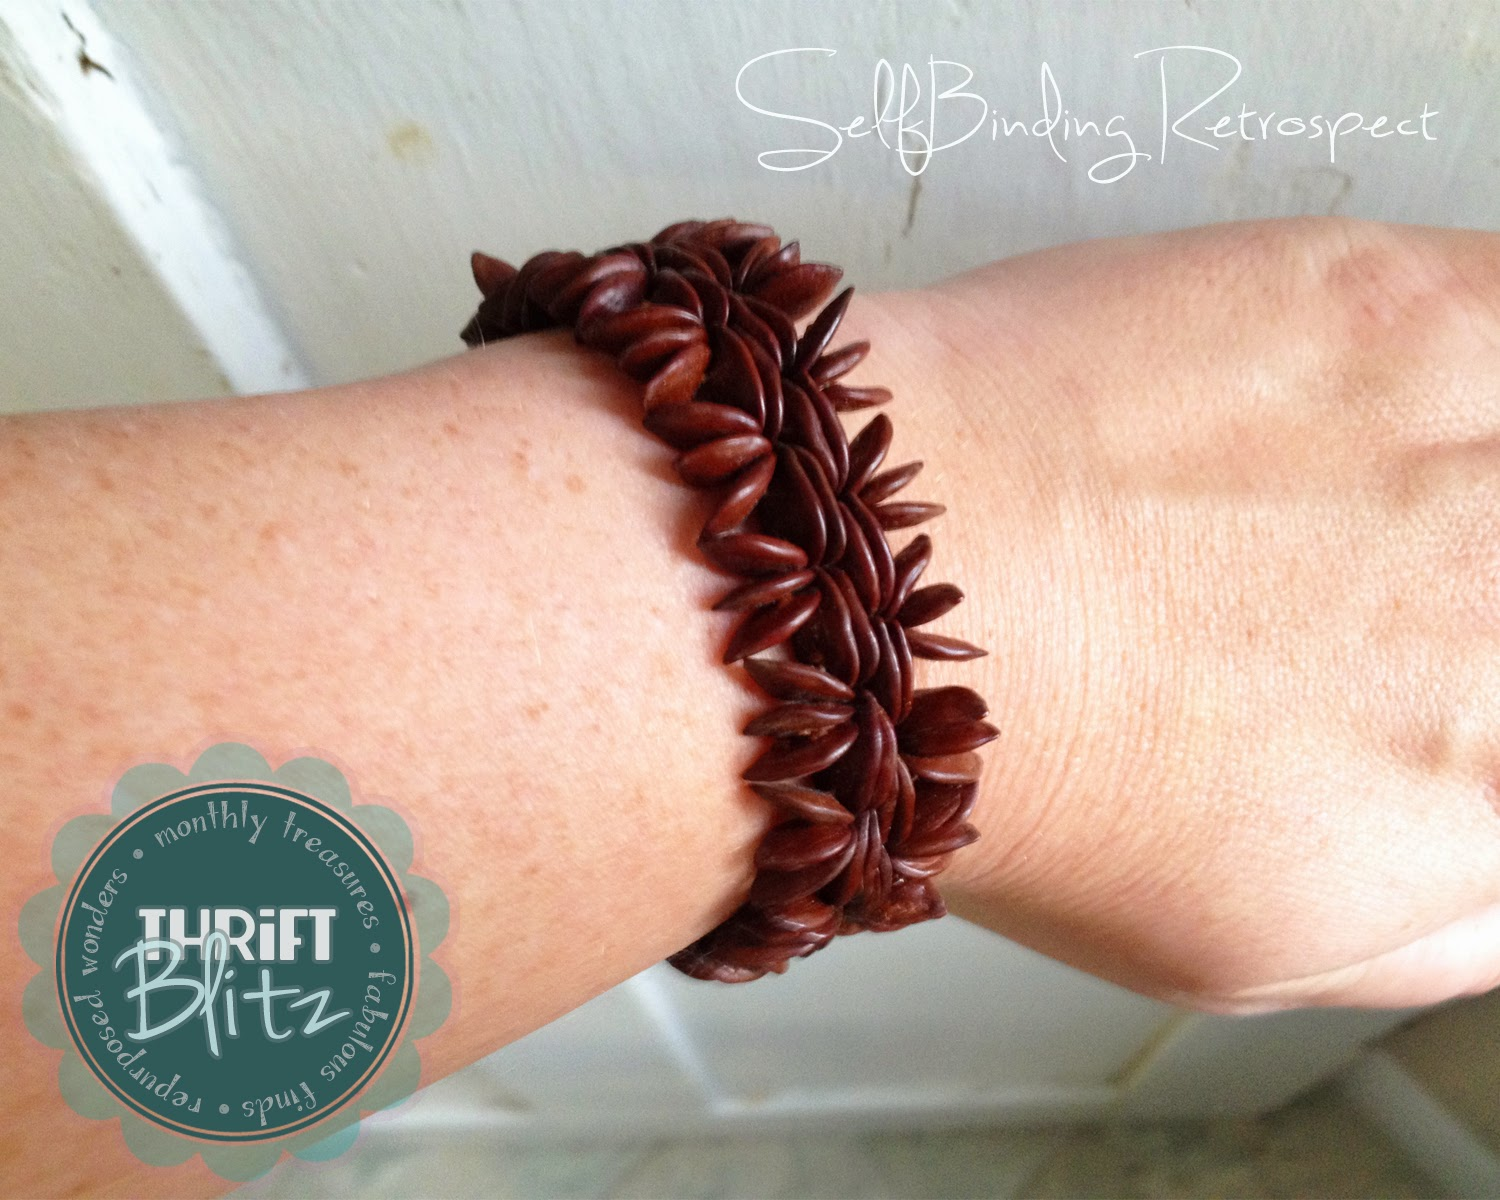 Thrift Blitz Episode One: Wooden Bracelet - SelfBinding Retrospect by Alanna Rusnak